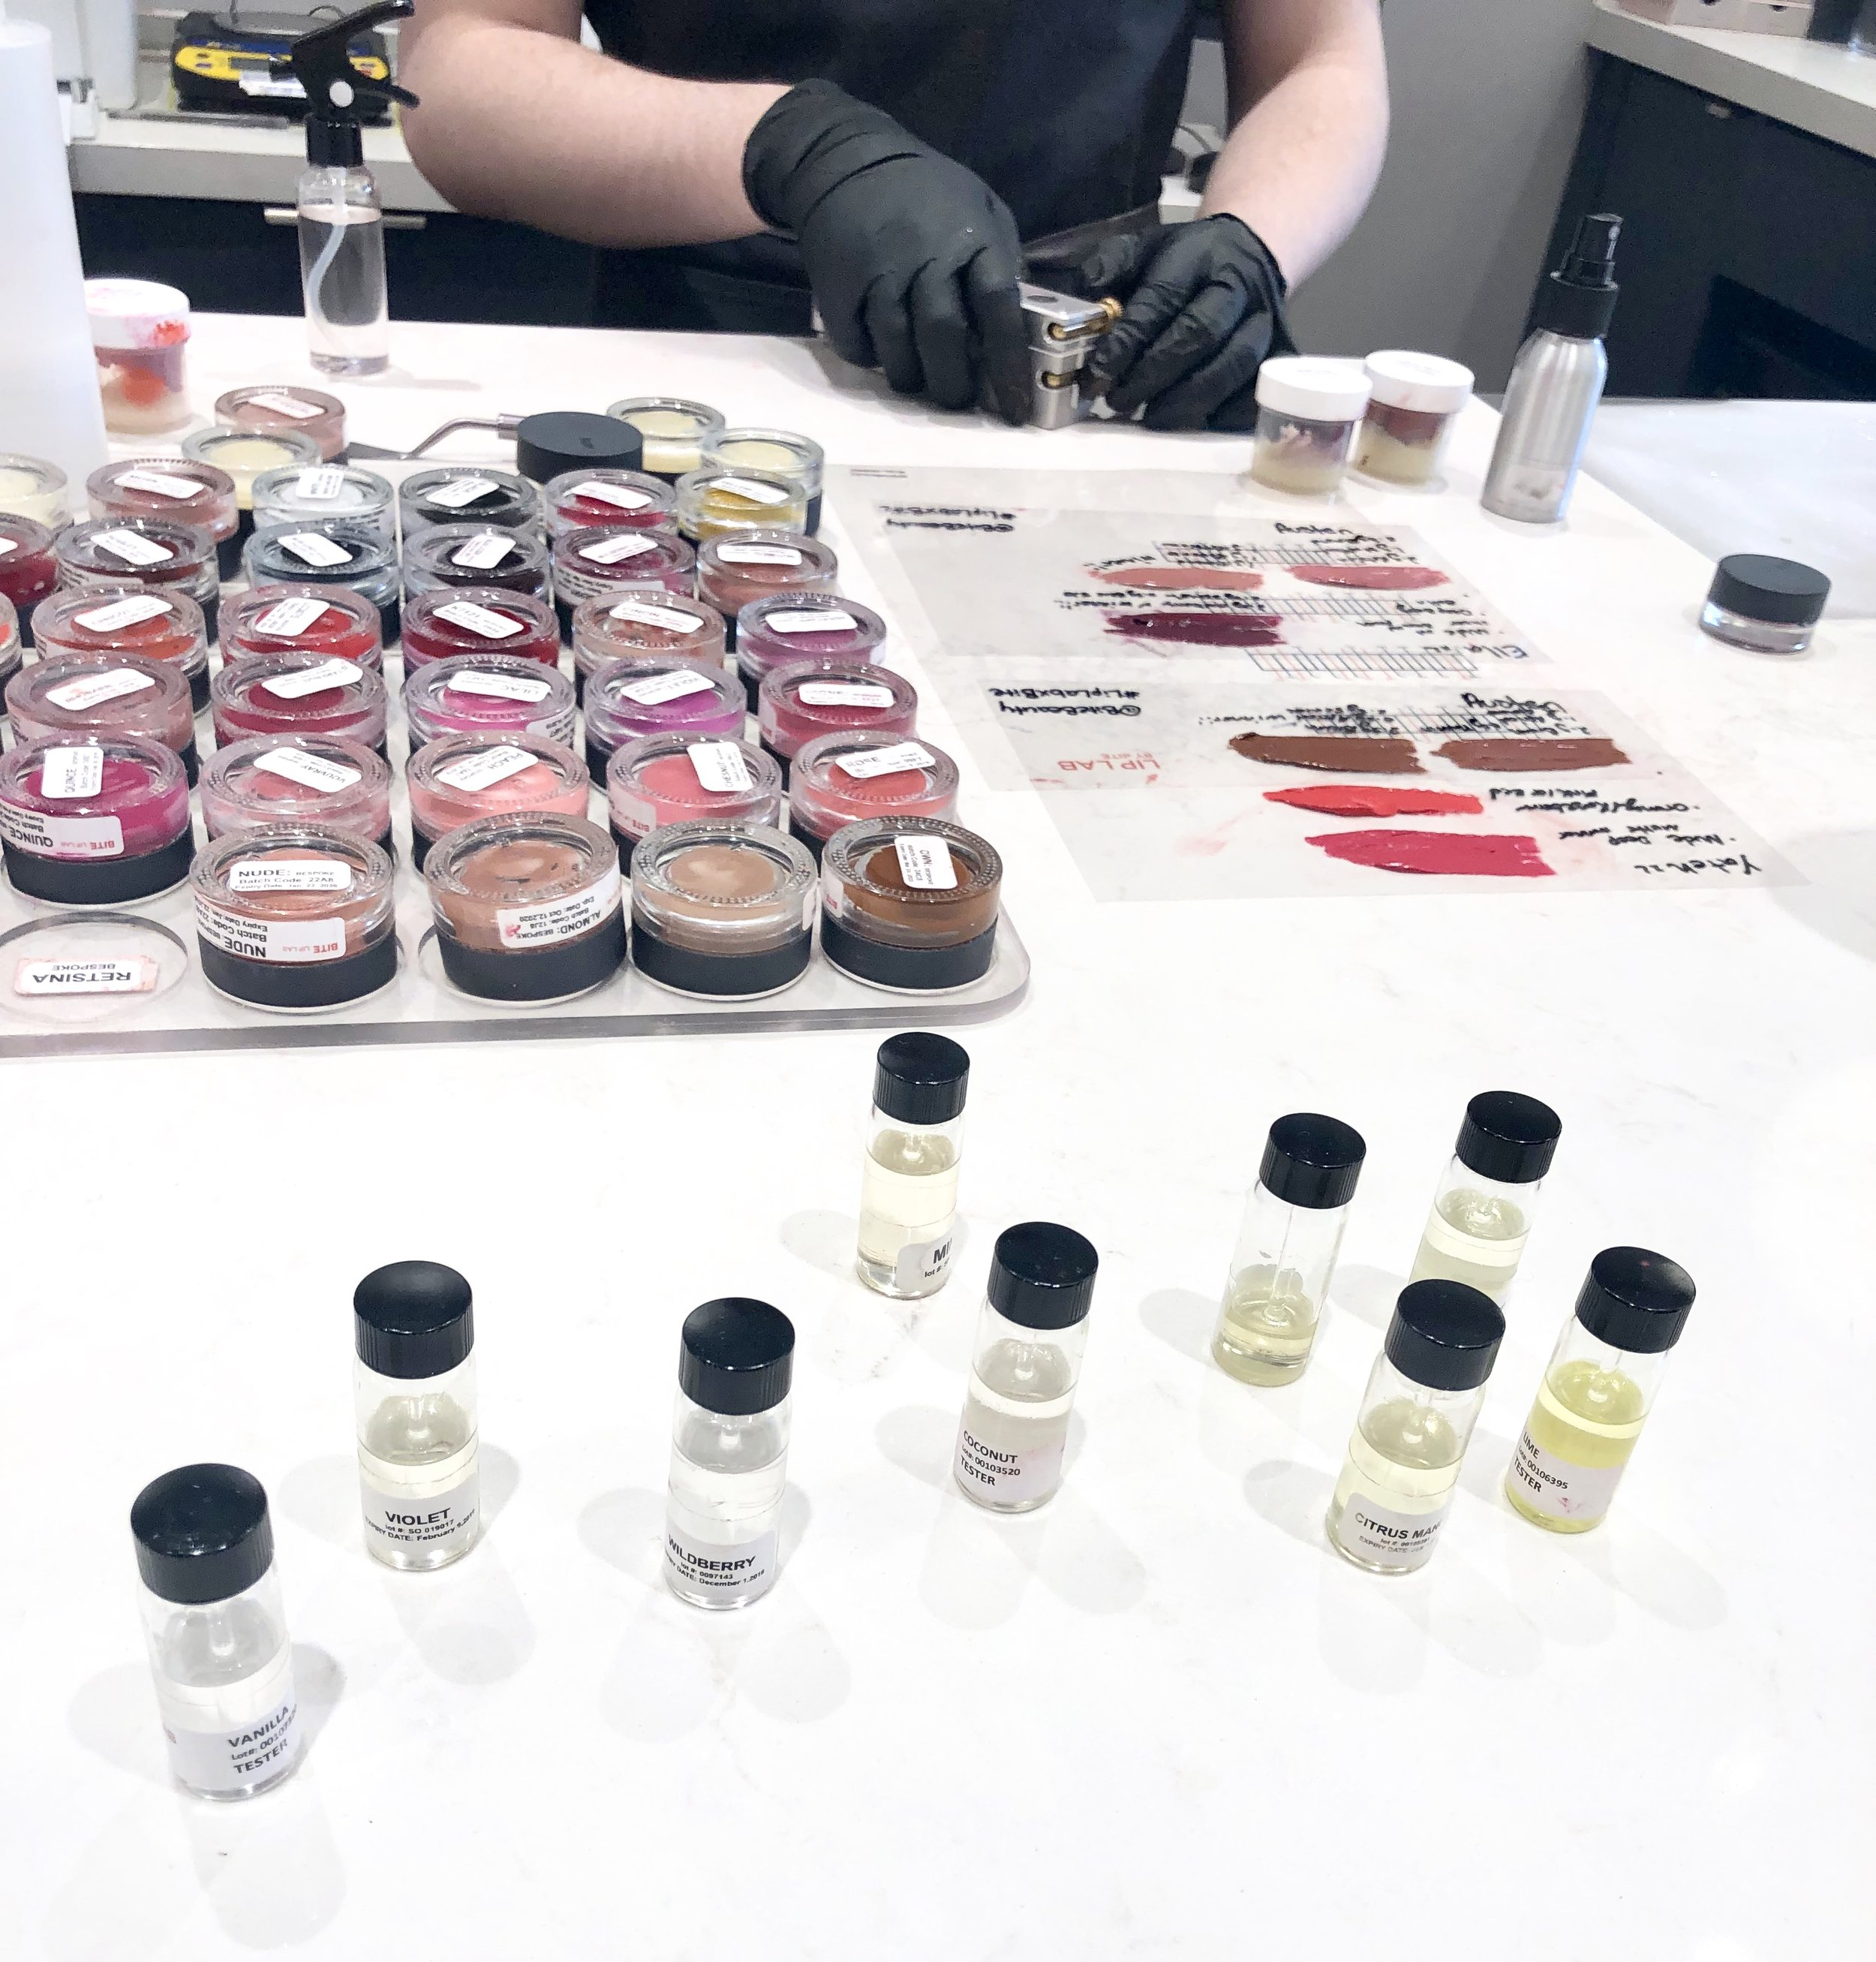 The colourful jars are the lipstick pigments that the Colour Artist mixes together to create your bespoke lipstick and the tiny jars with liquid in them are scents that you can choose to add to your lipstick as well.